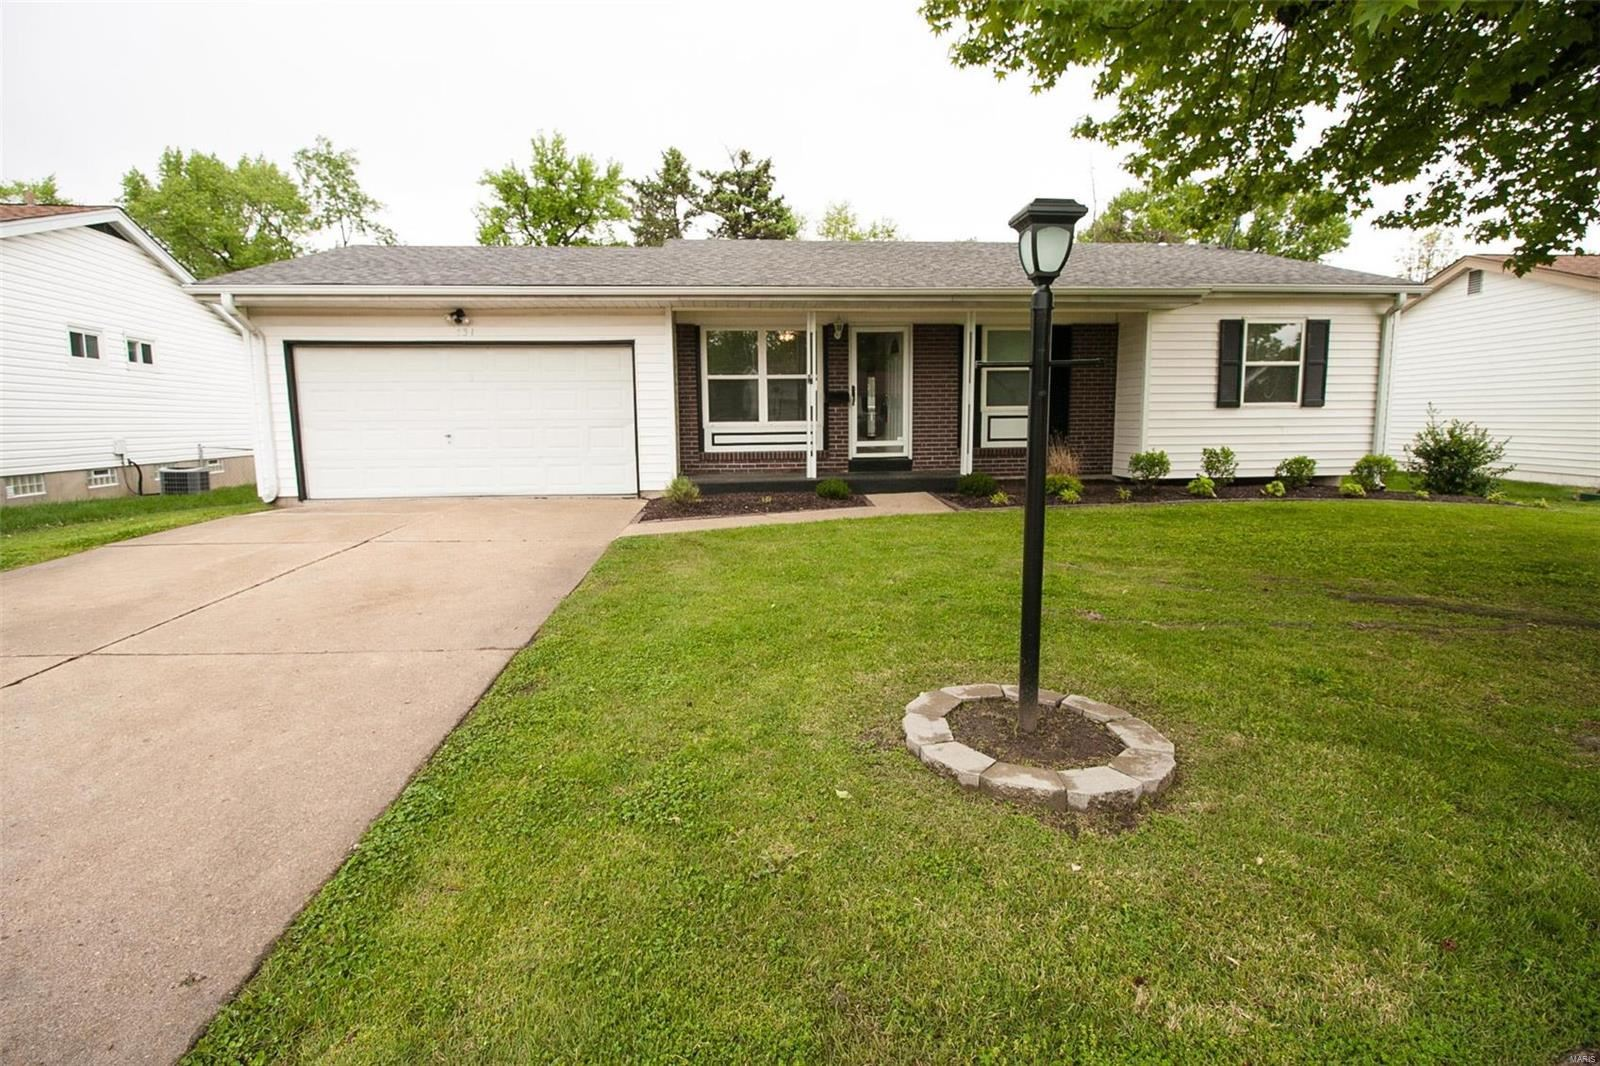 431 White Birch Way, Hazelwood, MO 63042 - MLS#: 20035664